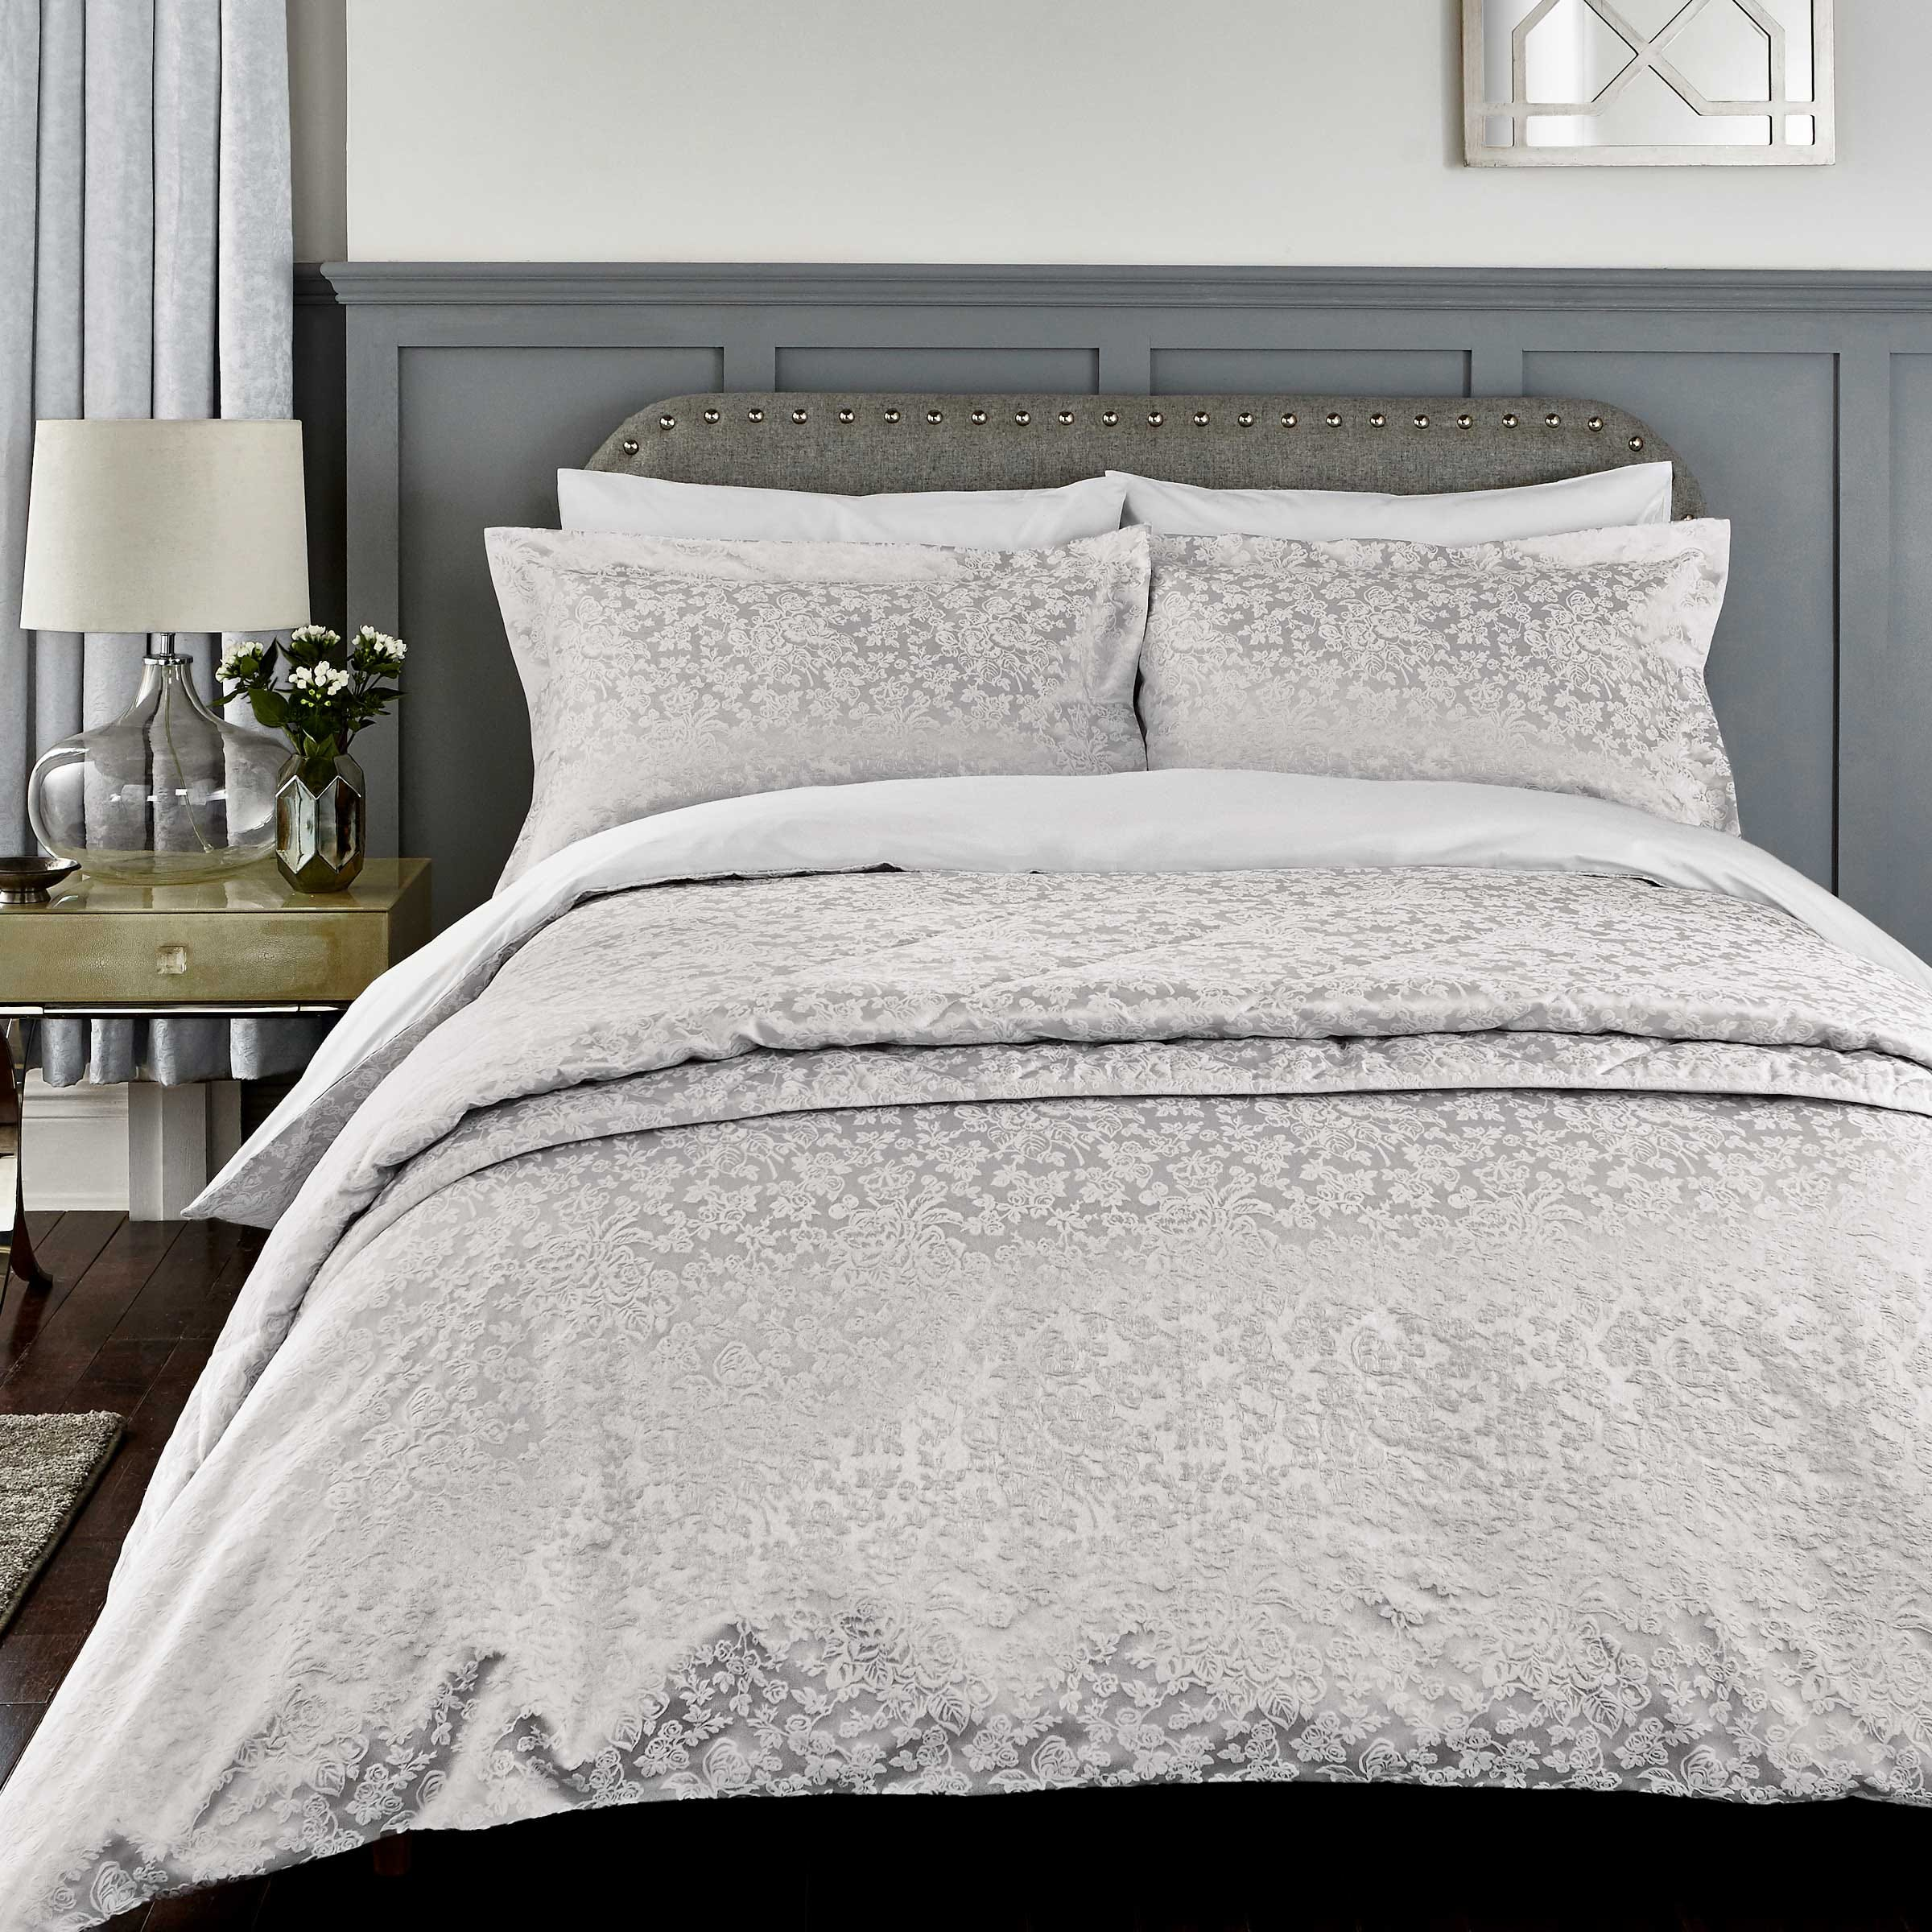 silver duvet cover shop for cheap home textiles and save. Black Bedroom Furniture Sets. Home Design Ideas